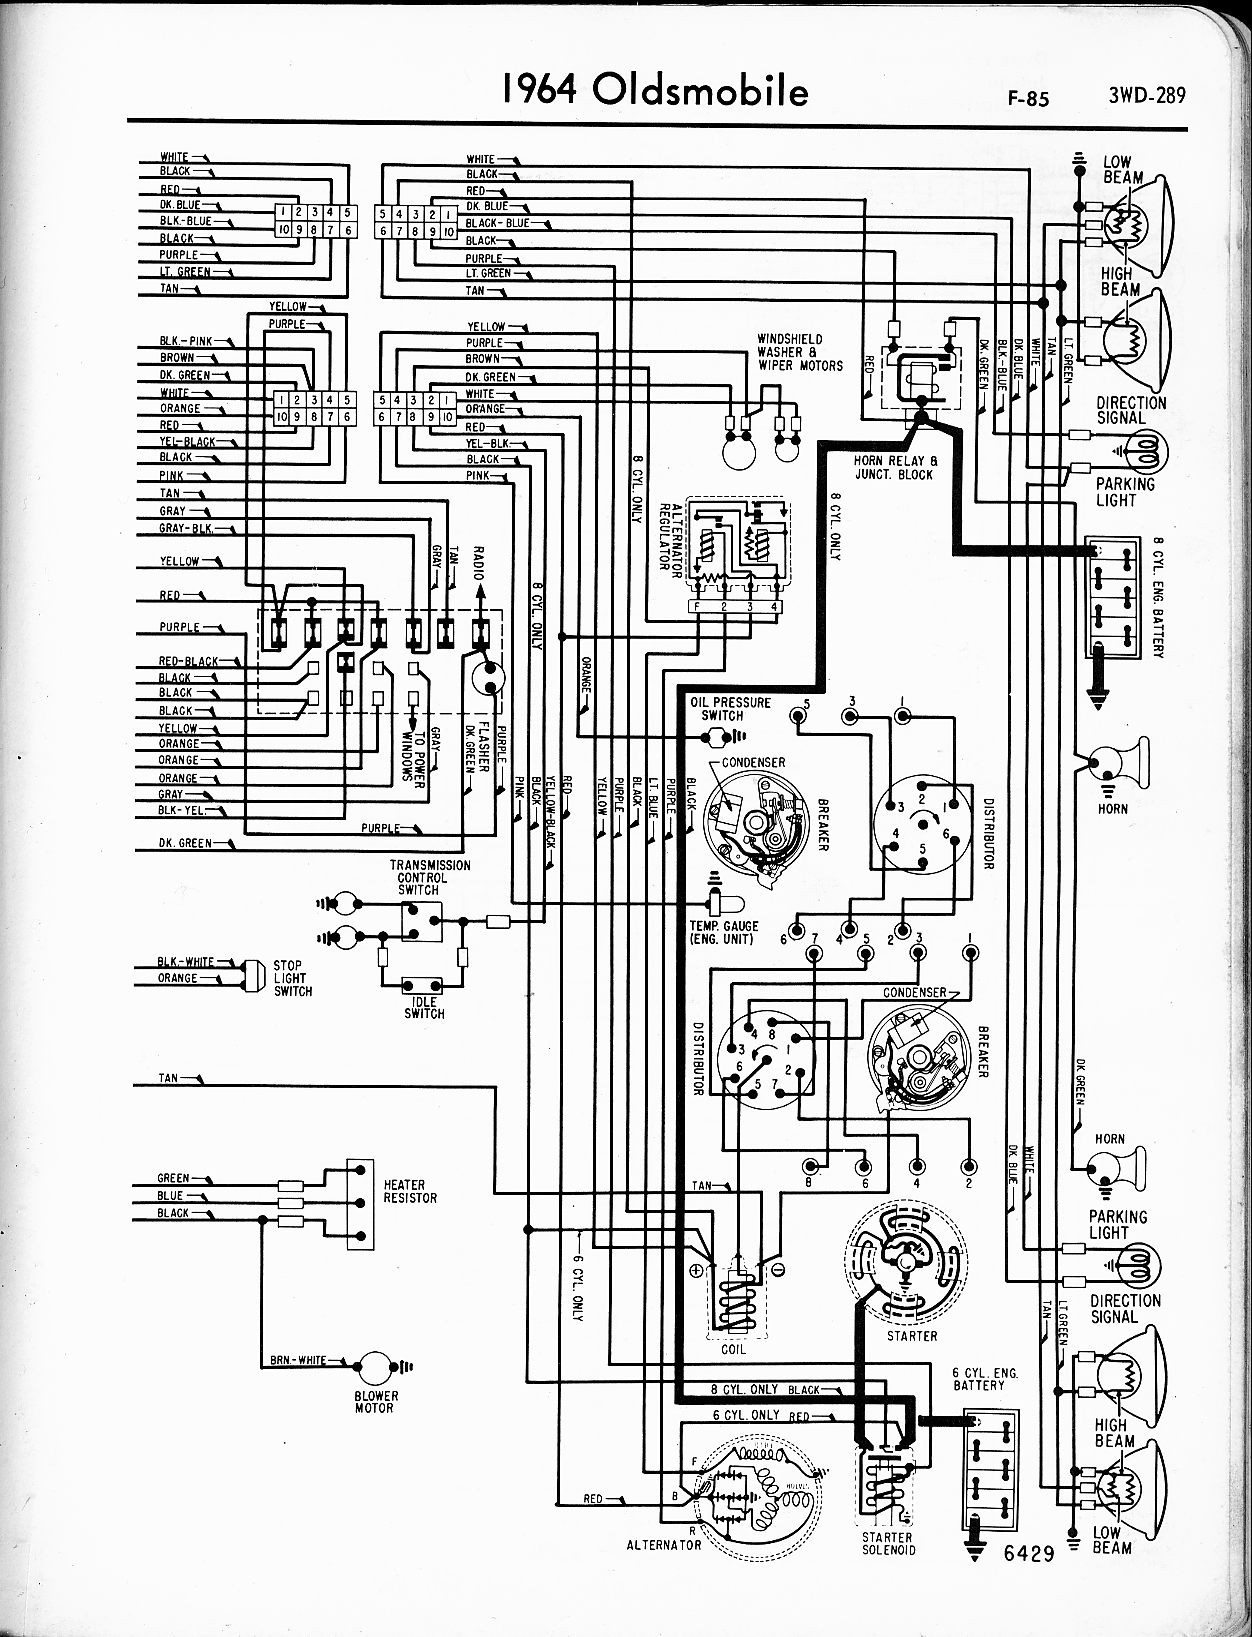 Isuzu Mu Fuse Box - Auto Electrical Wiring Diagram on free auto wiring schematic, free car repair manuals, free vehicle diagrams, free chilton diagrams, free car parts, electrical diagrams, free diagram templates, free schematic diagram, free auto diagrams, free home, free honda wiring diagram, free car schematics, free electronic schematics, free engine rebuilding diagrams, free car seats, free car diagnostic, free car tools, free car maintenance, free car engine diagrams, free toyota repair diagrams,